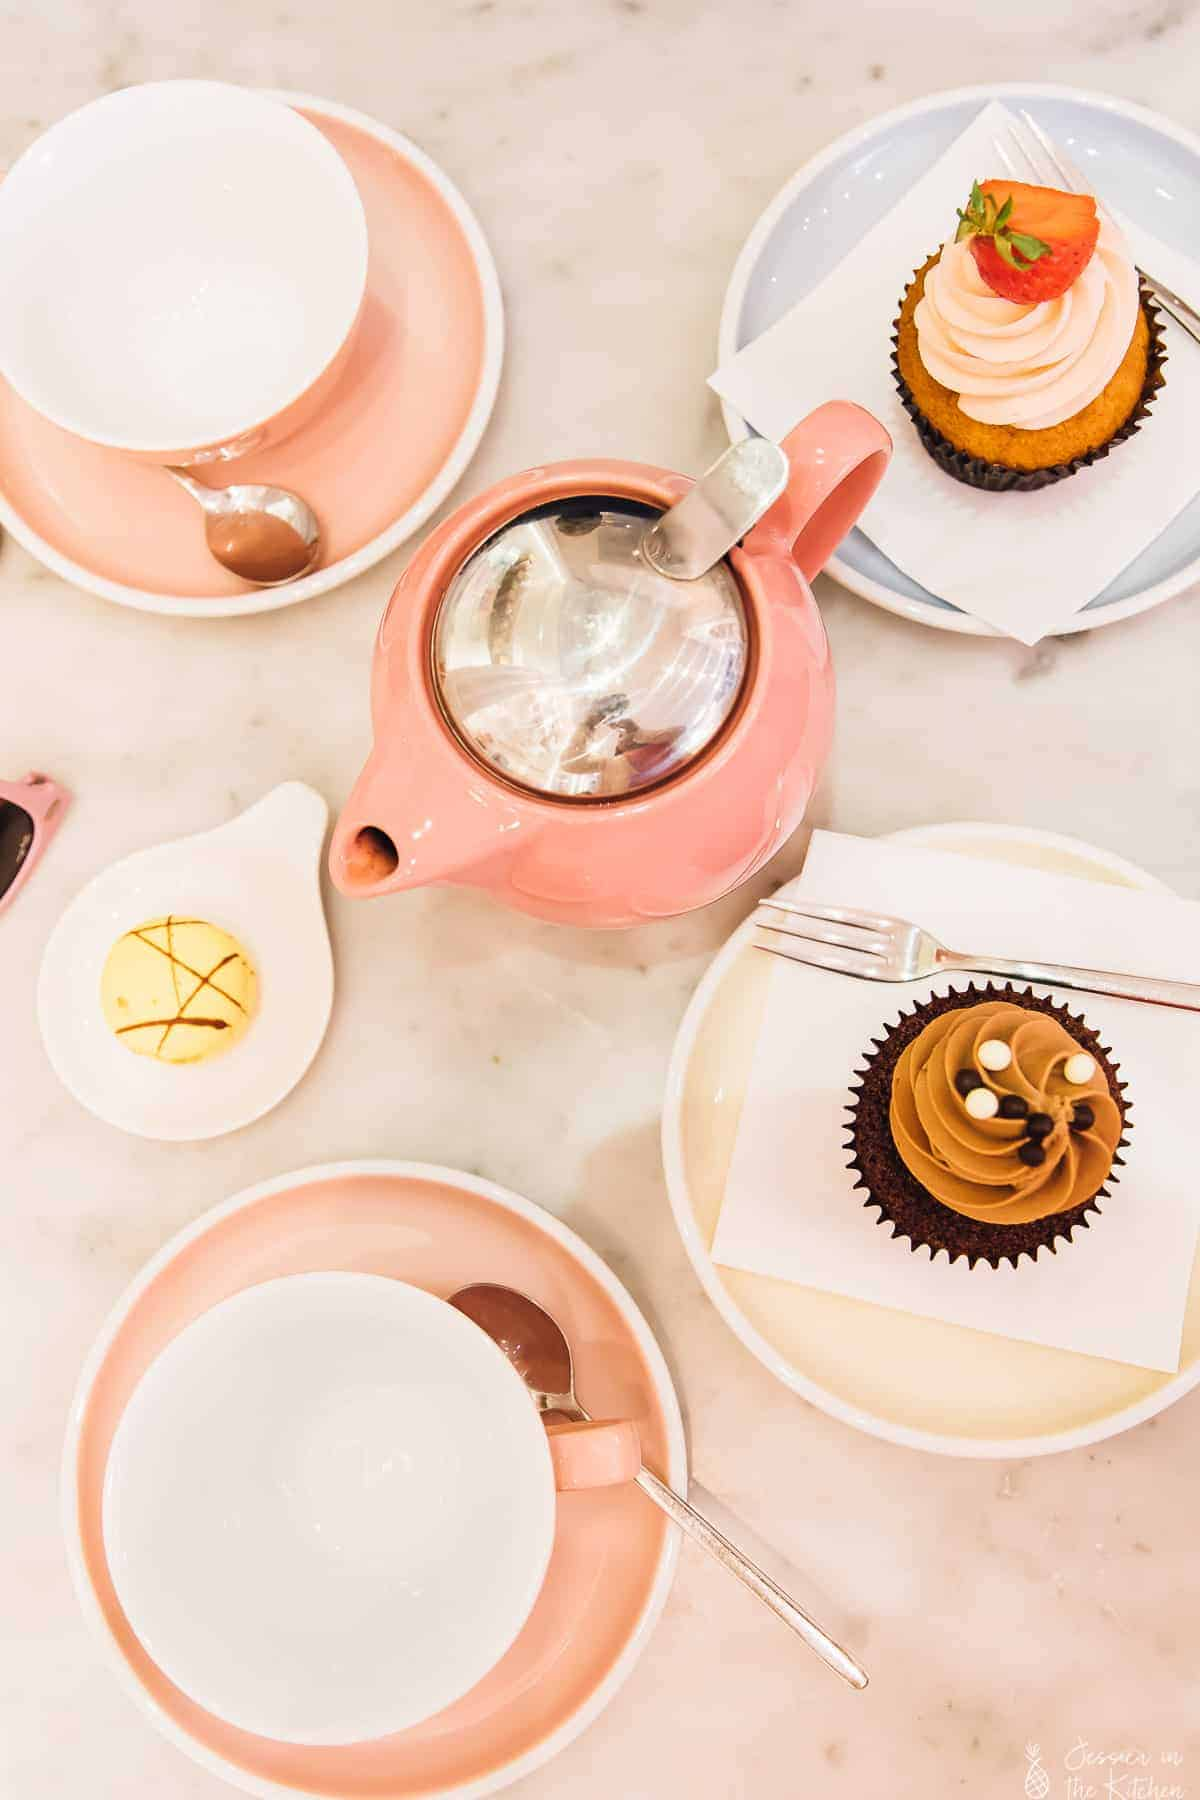 Top down view of pink cups and cupcakes on a table.